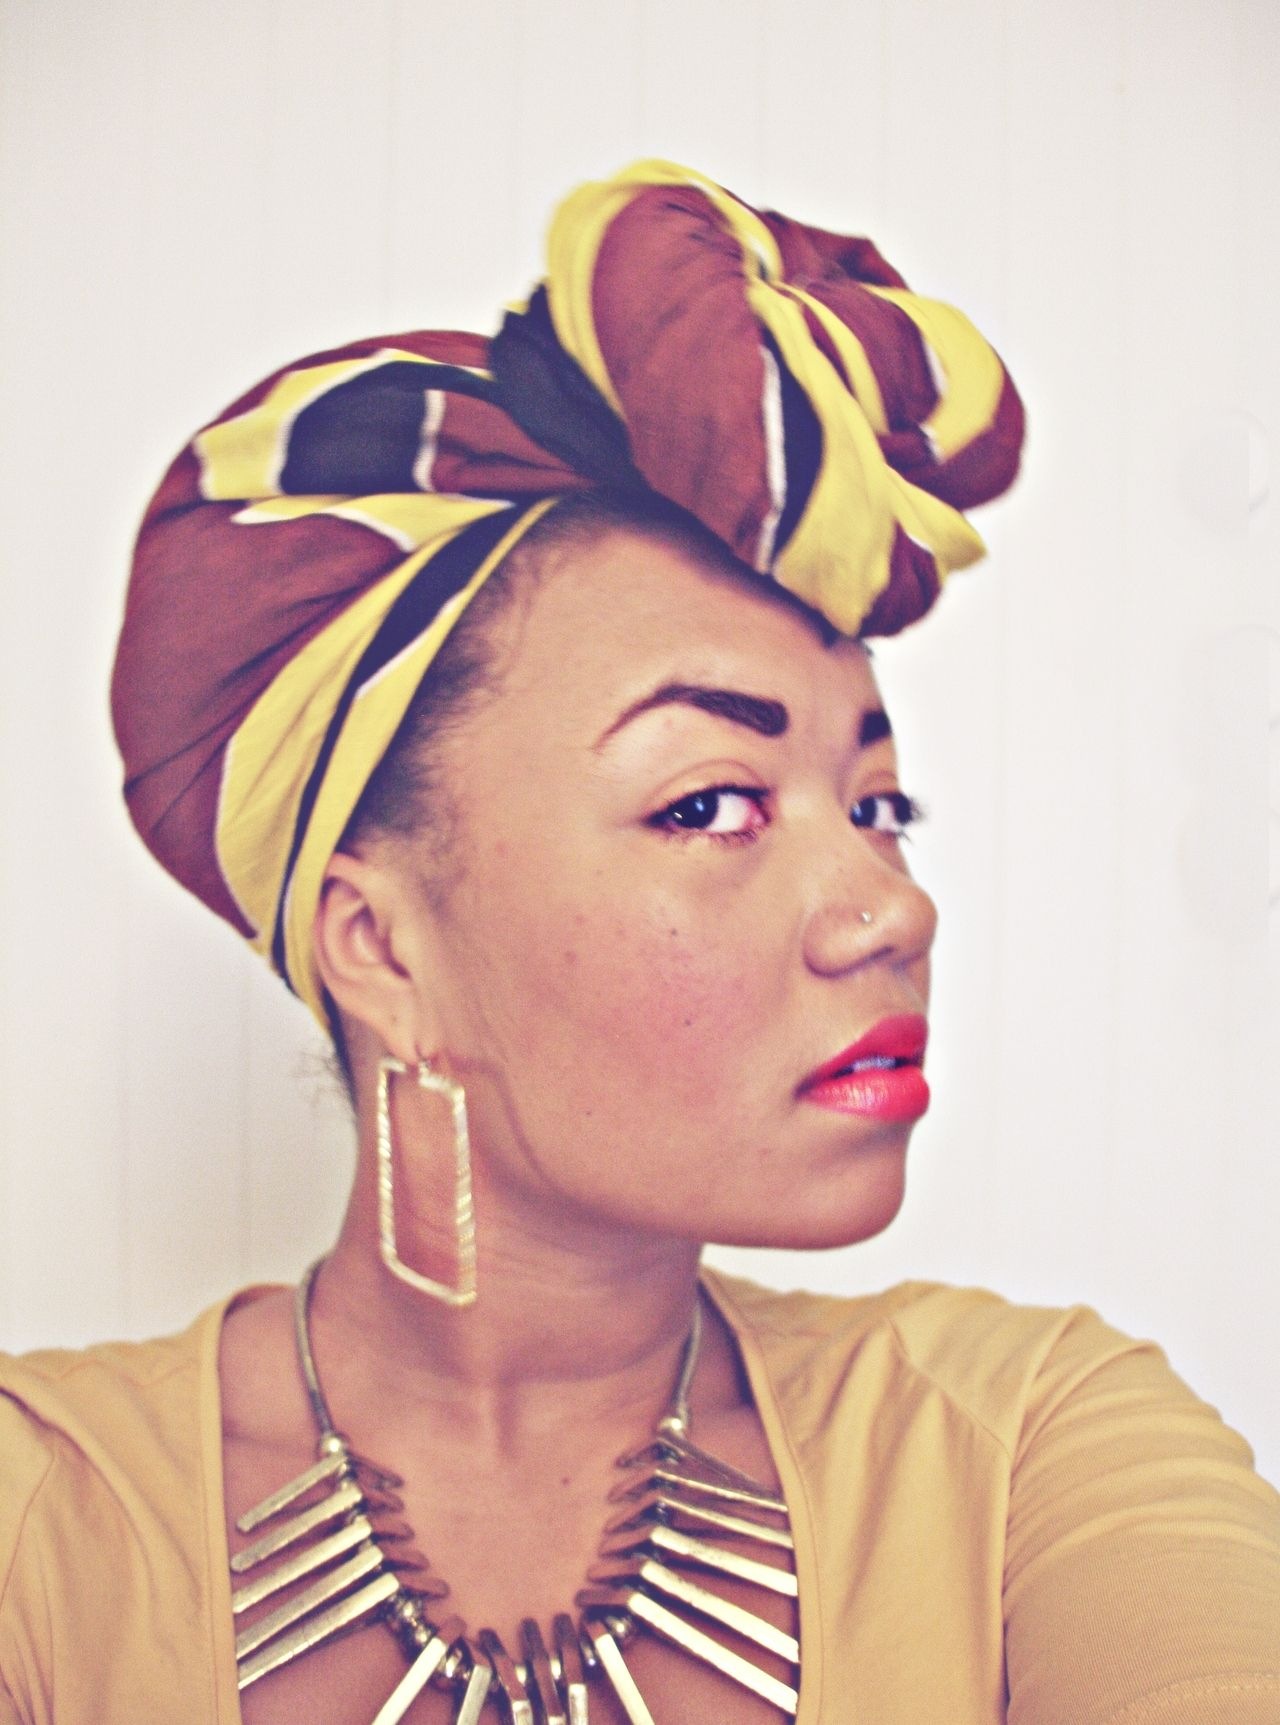 Accessories head wrap earrings nose piercing and necklace All